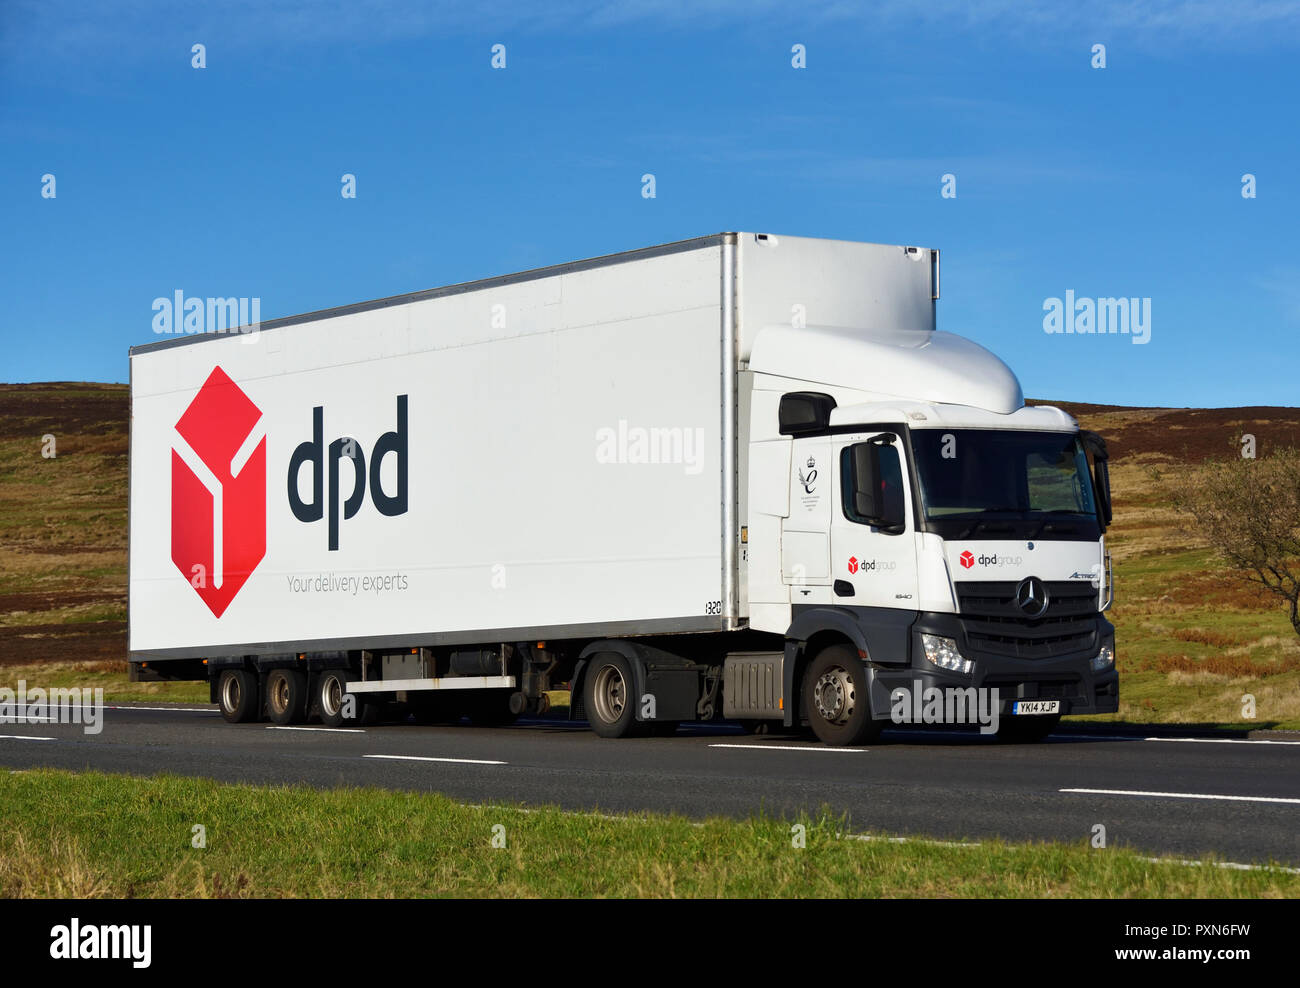 dpd-group-your-delivery-experts-hgv-m6-motorway-southbound-carriageway-shap-cumbria-england-united-kingdom-europe-PXN6FW.jpg